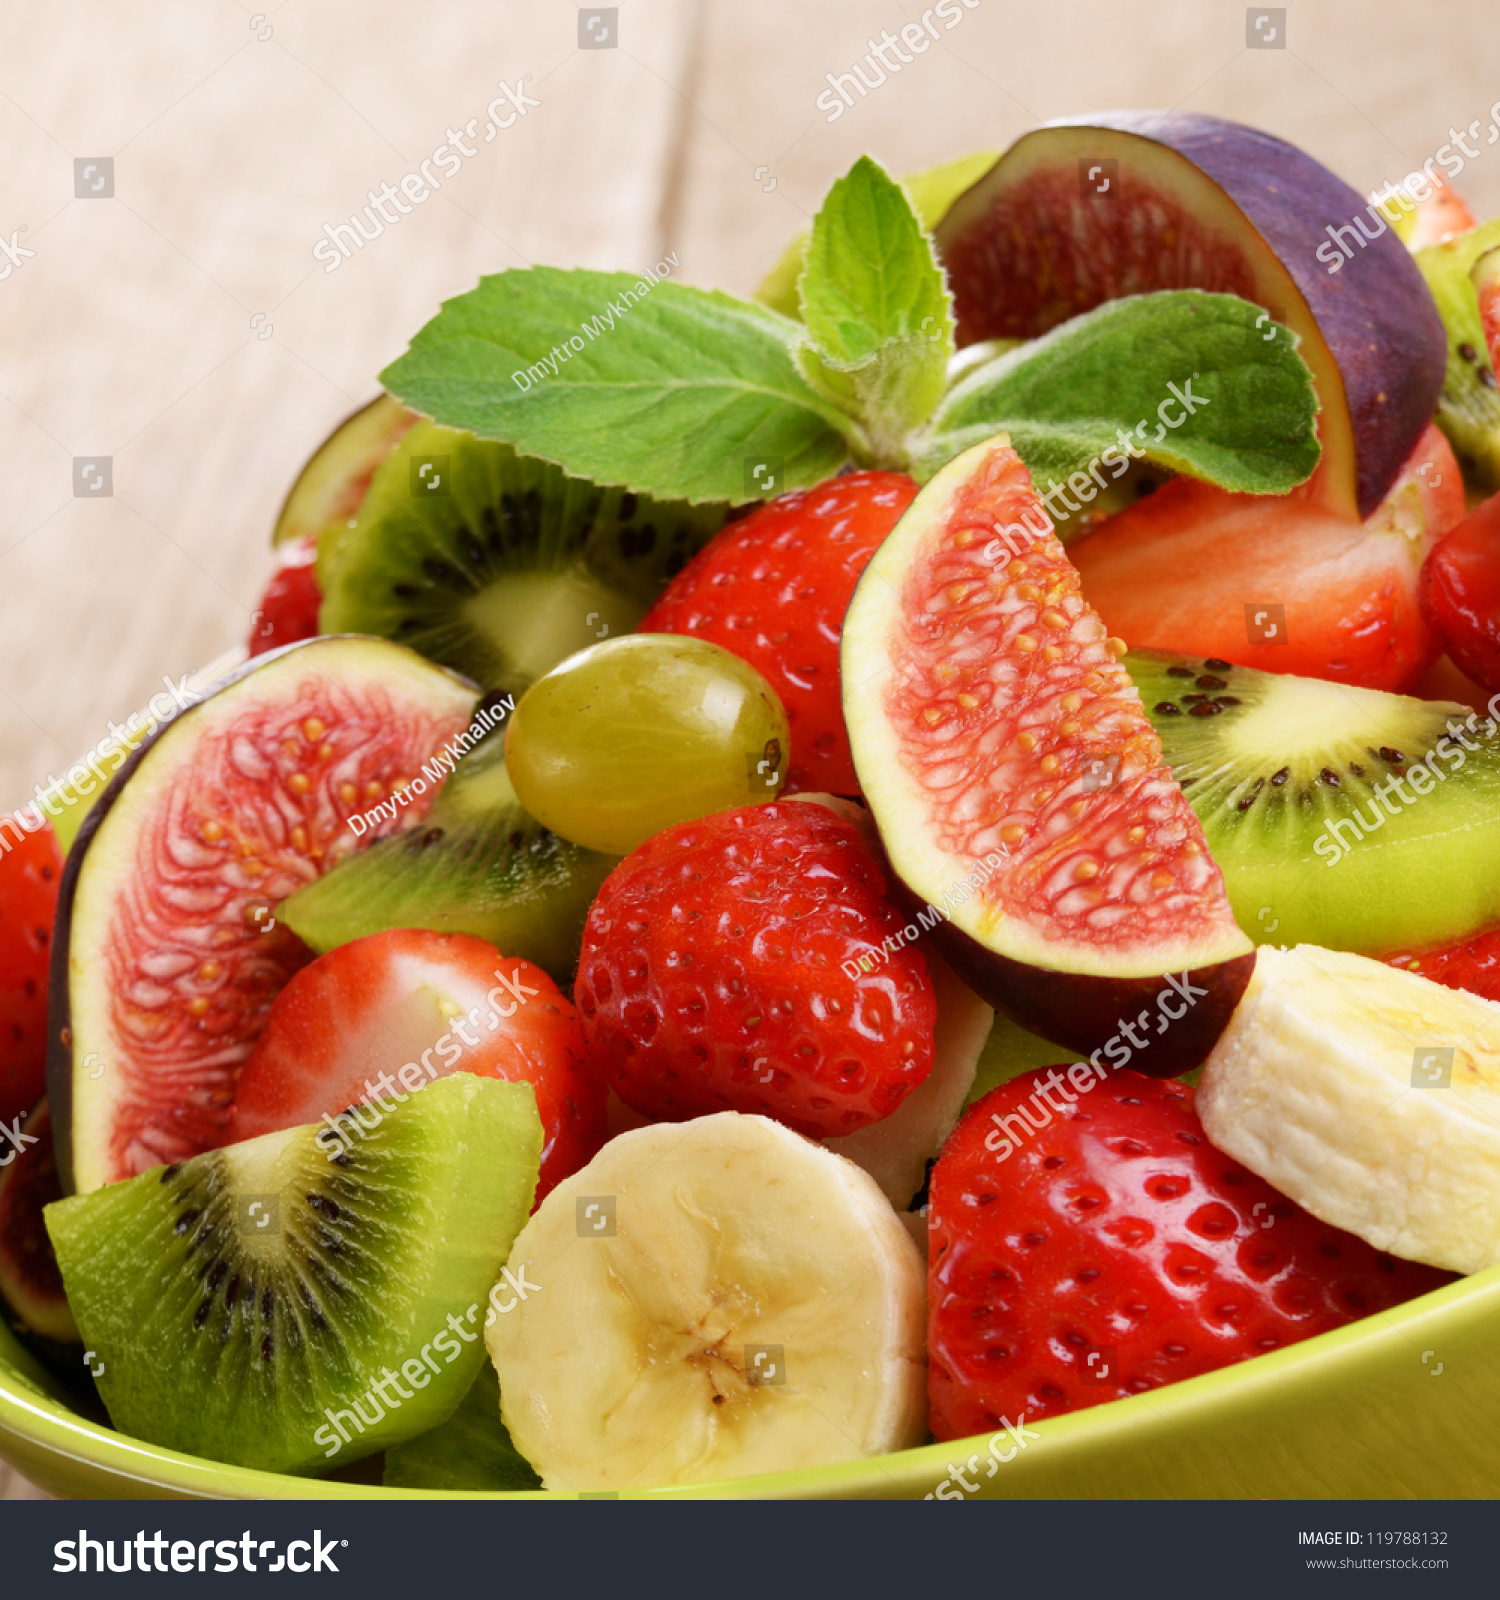 Healthy Mixed Fruit Salad On Kitchen Stock Photo (100% Legal ...